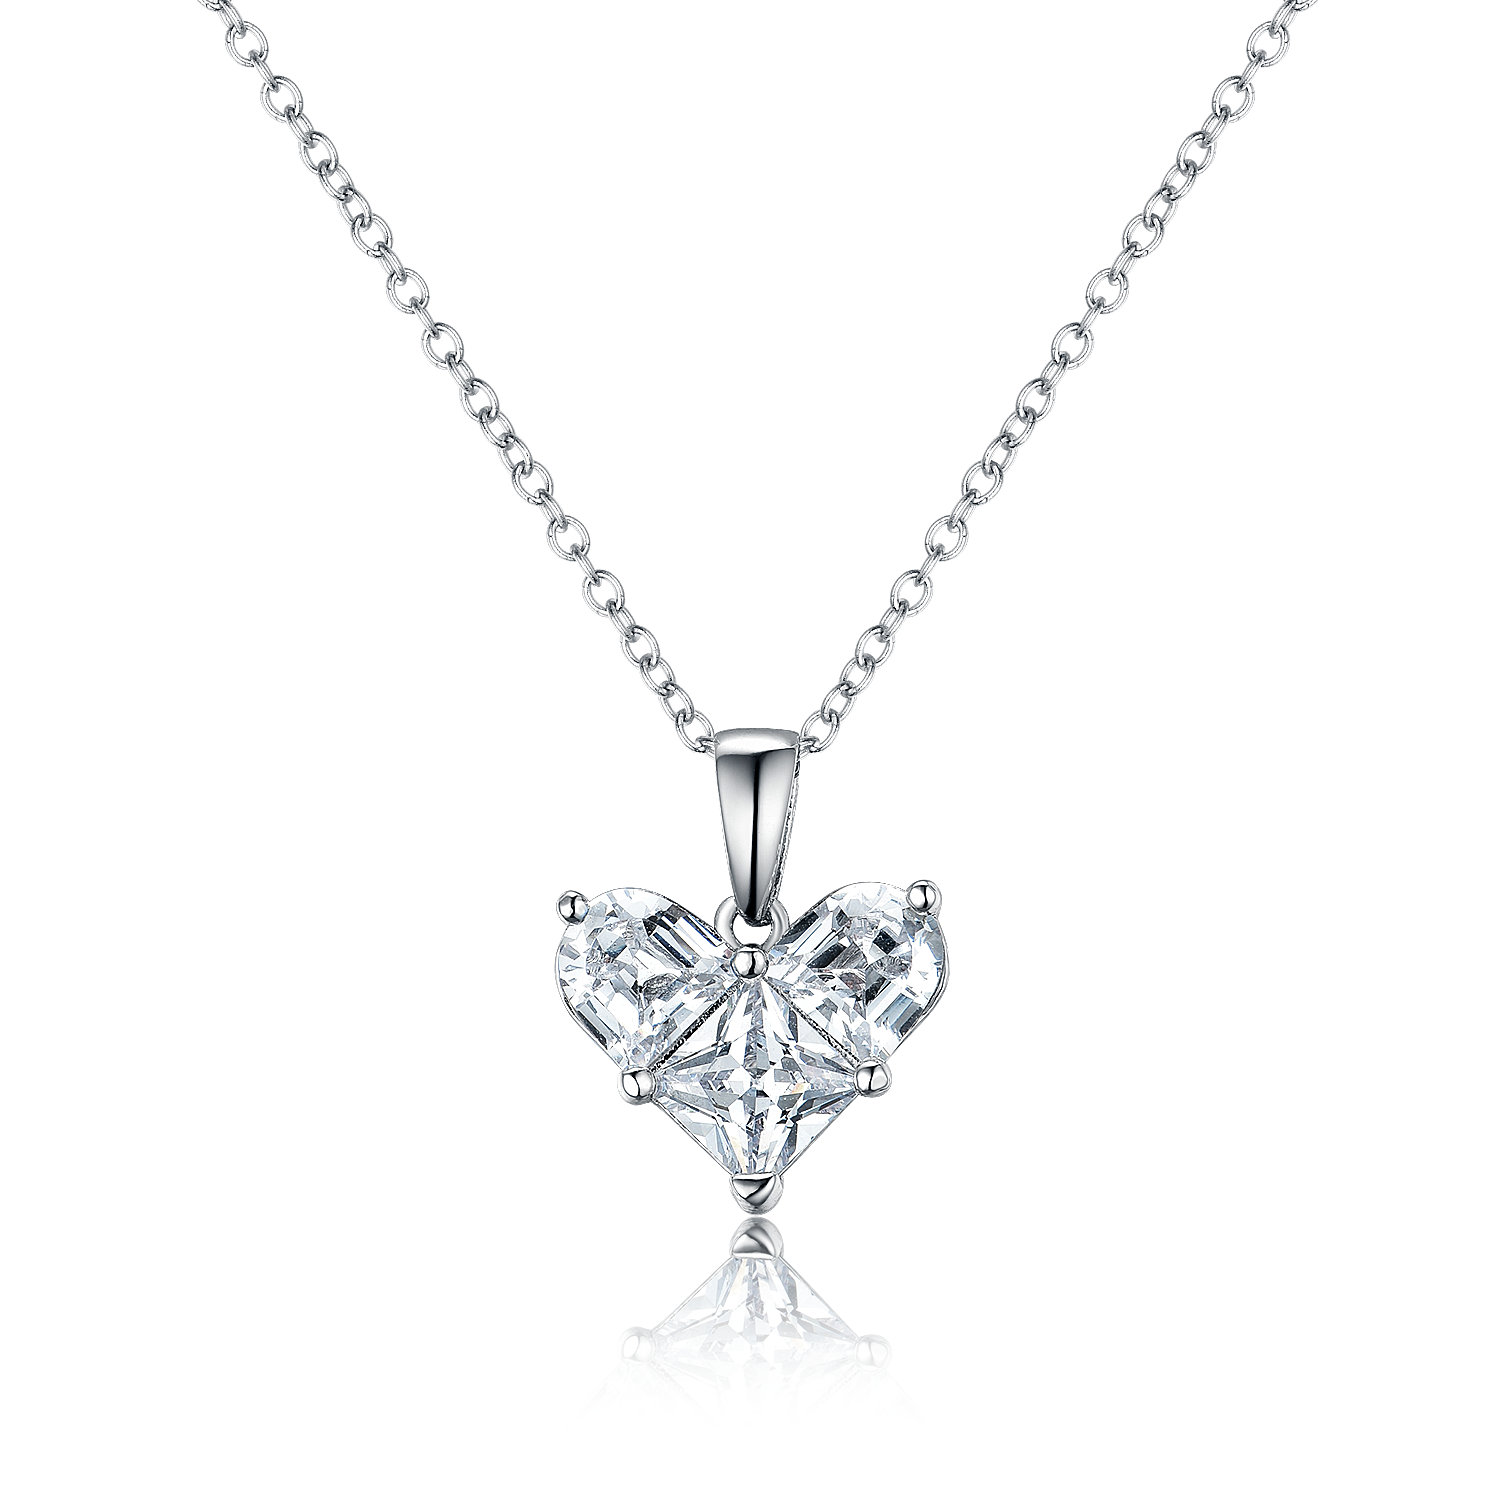 PE3504- Heart Pendant with half moon CZ & Square CZ in Sterling Silver/Brass plated Rhodium from China Jewelry Manufacturer